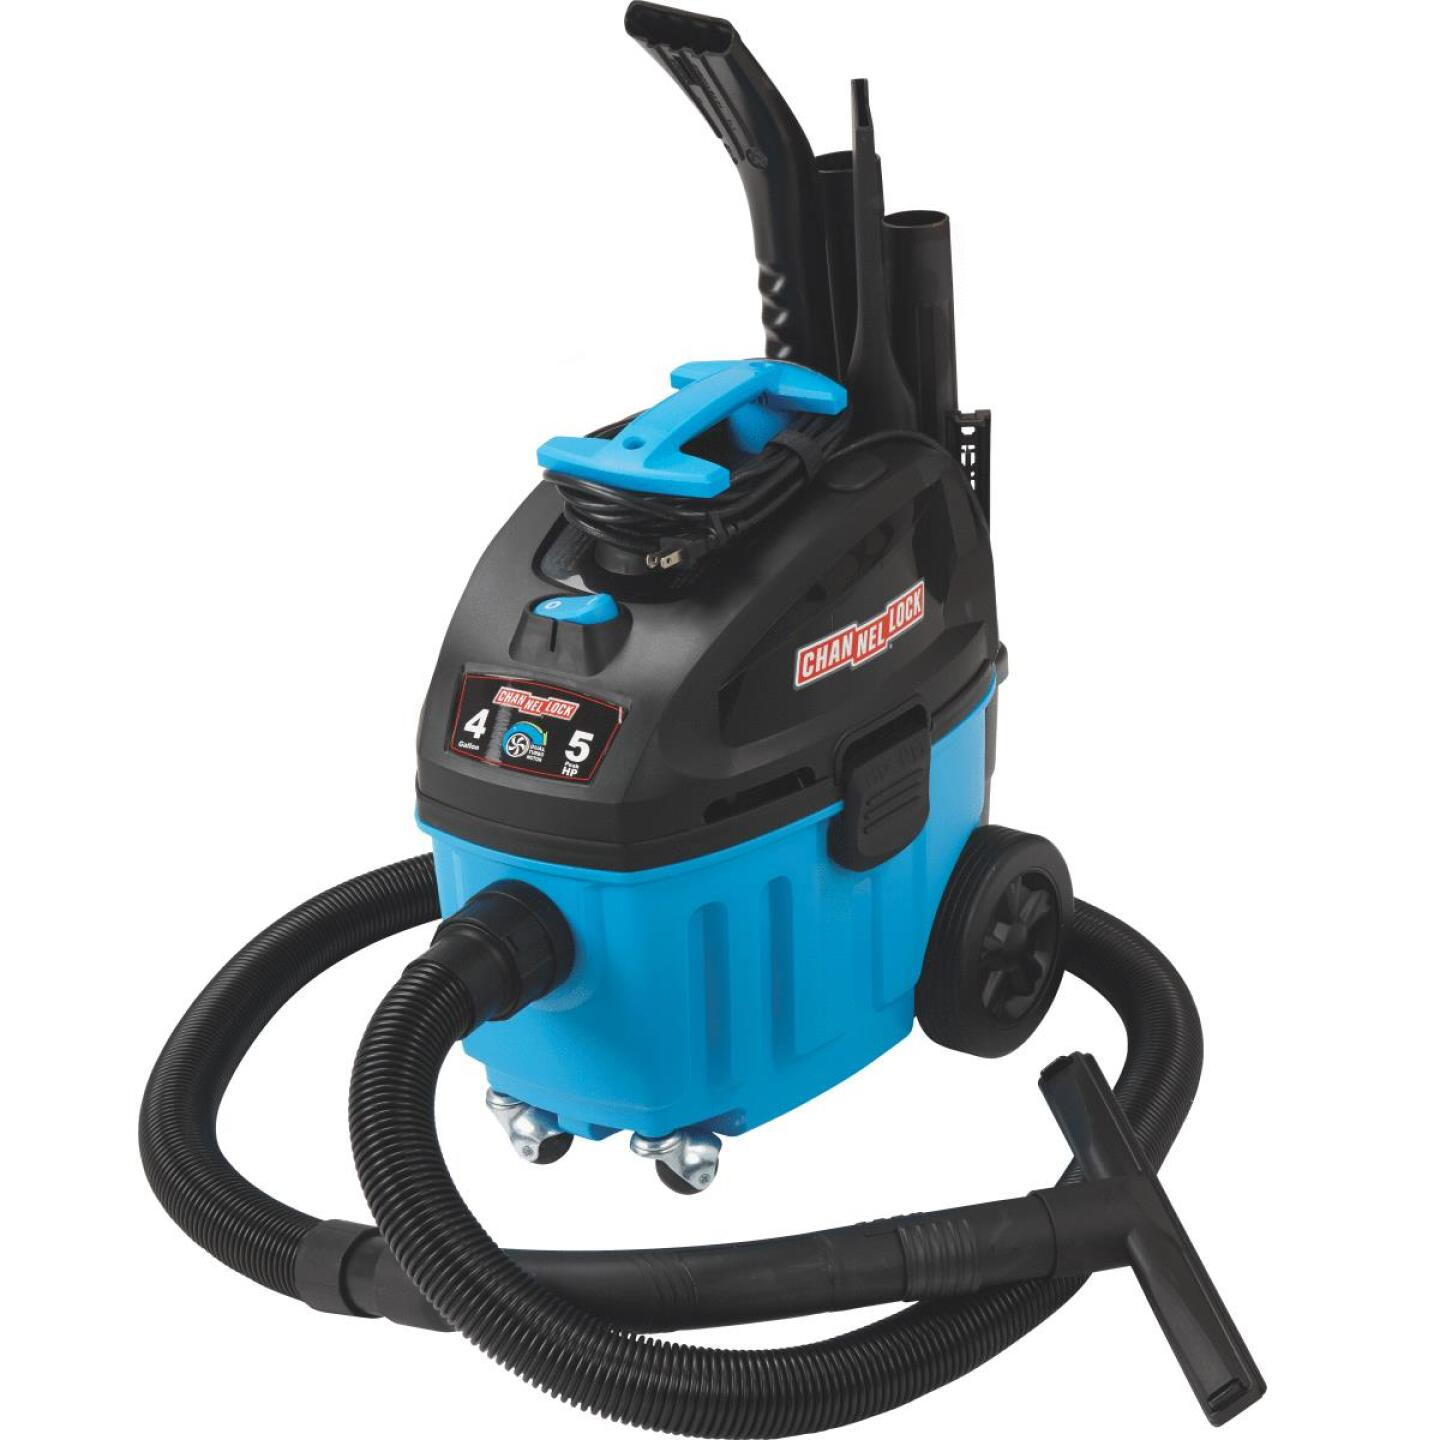 Channellock 4 Gal. 5.0-Peak HP Contractor Wet/Dry Vacuum Image 15